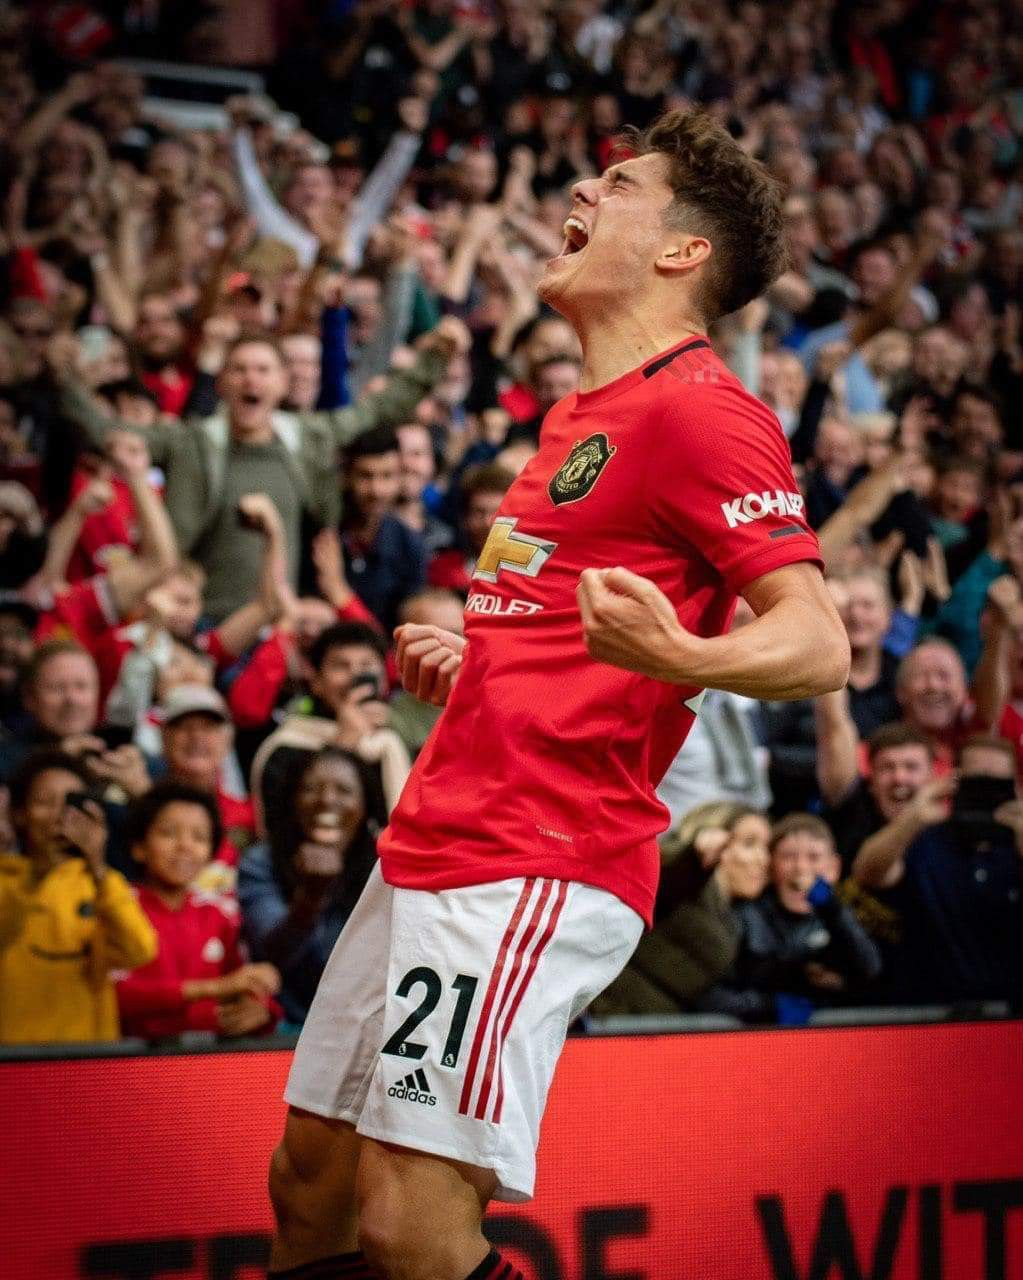 Pure passion! 🔴⚪️⚫️ 11/8/2019 Manchester united team